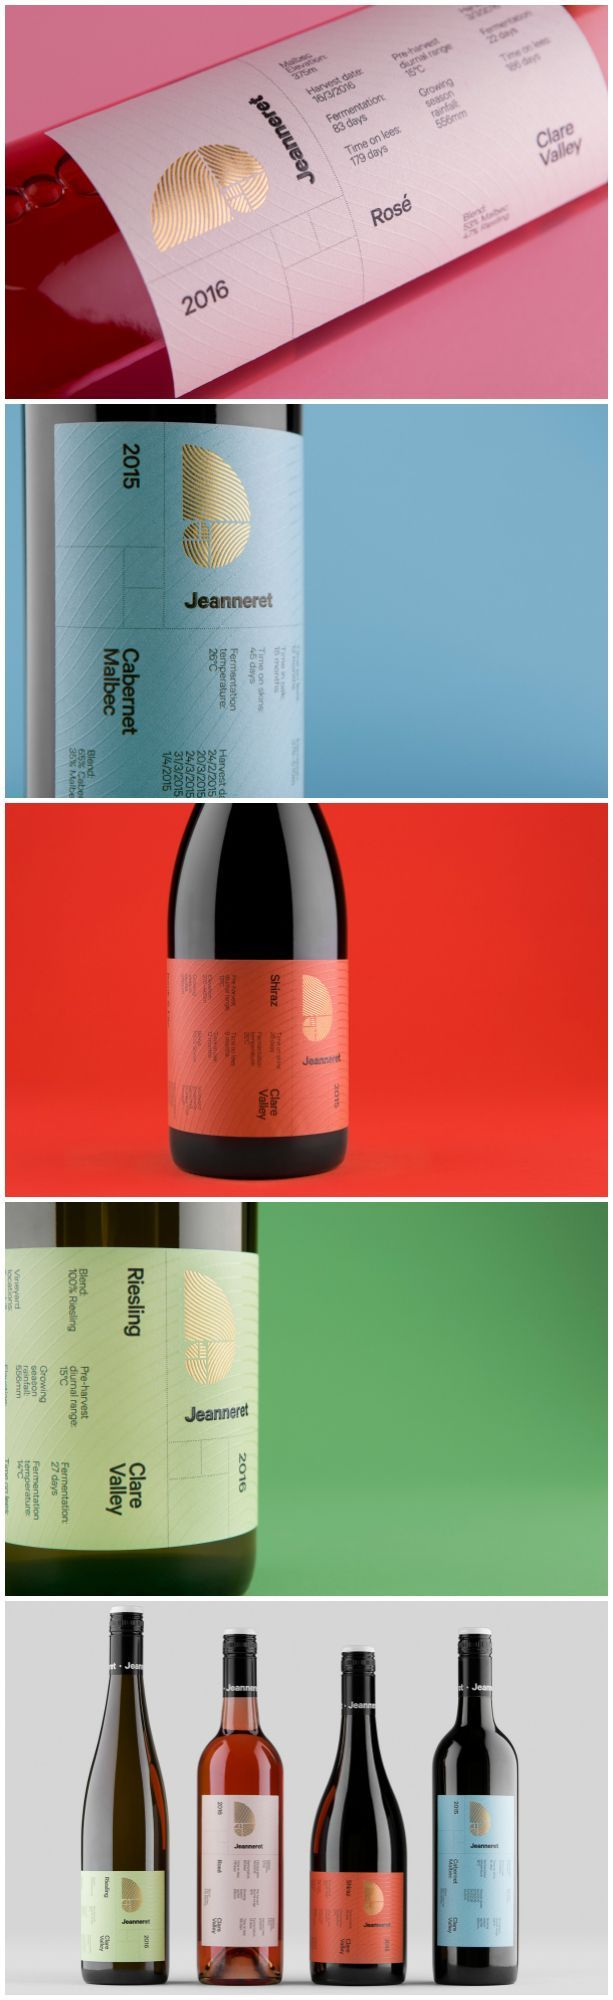 Australian Wine And Design Influenced By The Natural World And Architecture World Brand Design Australian Wine Wine Wine Packaging